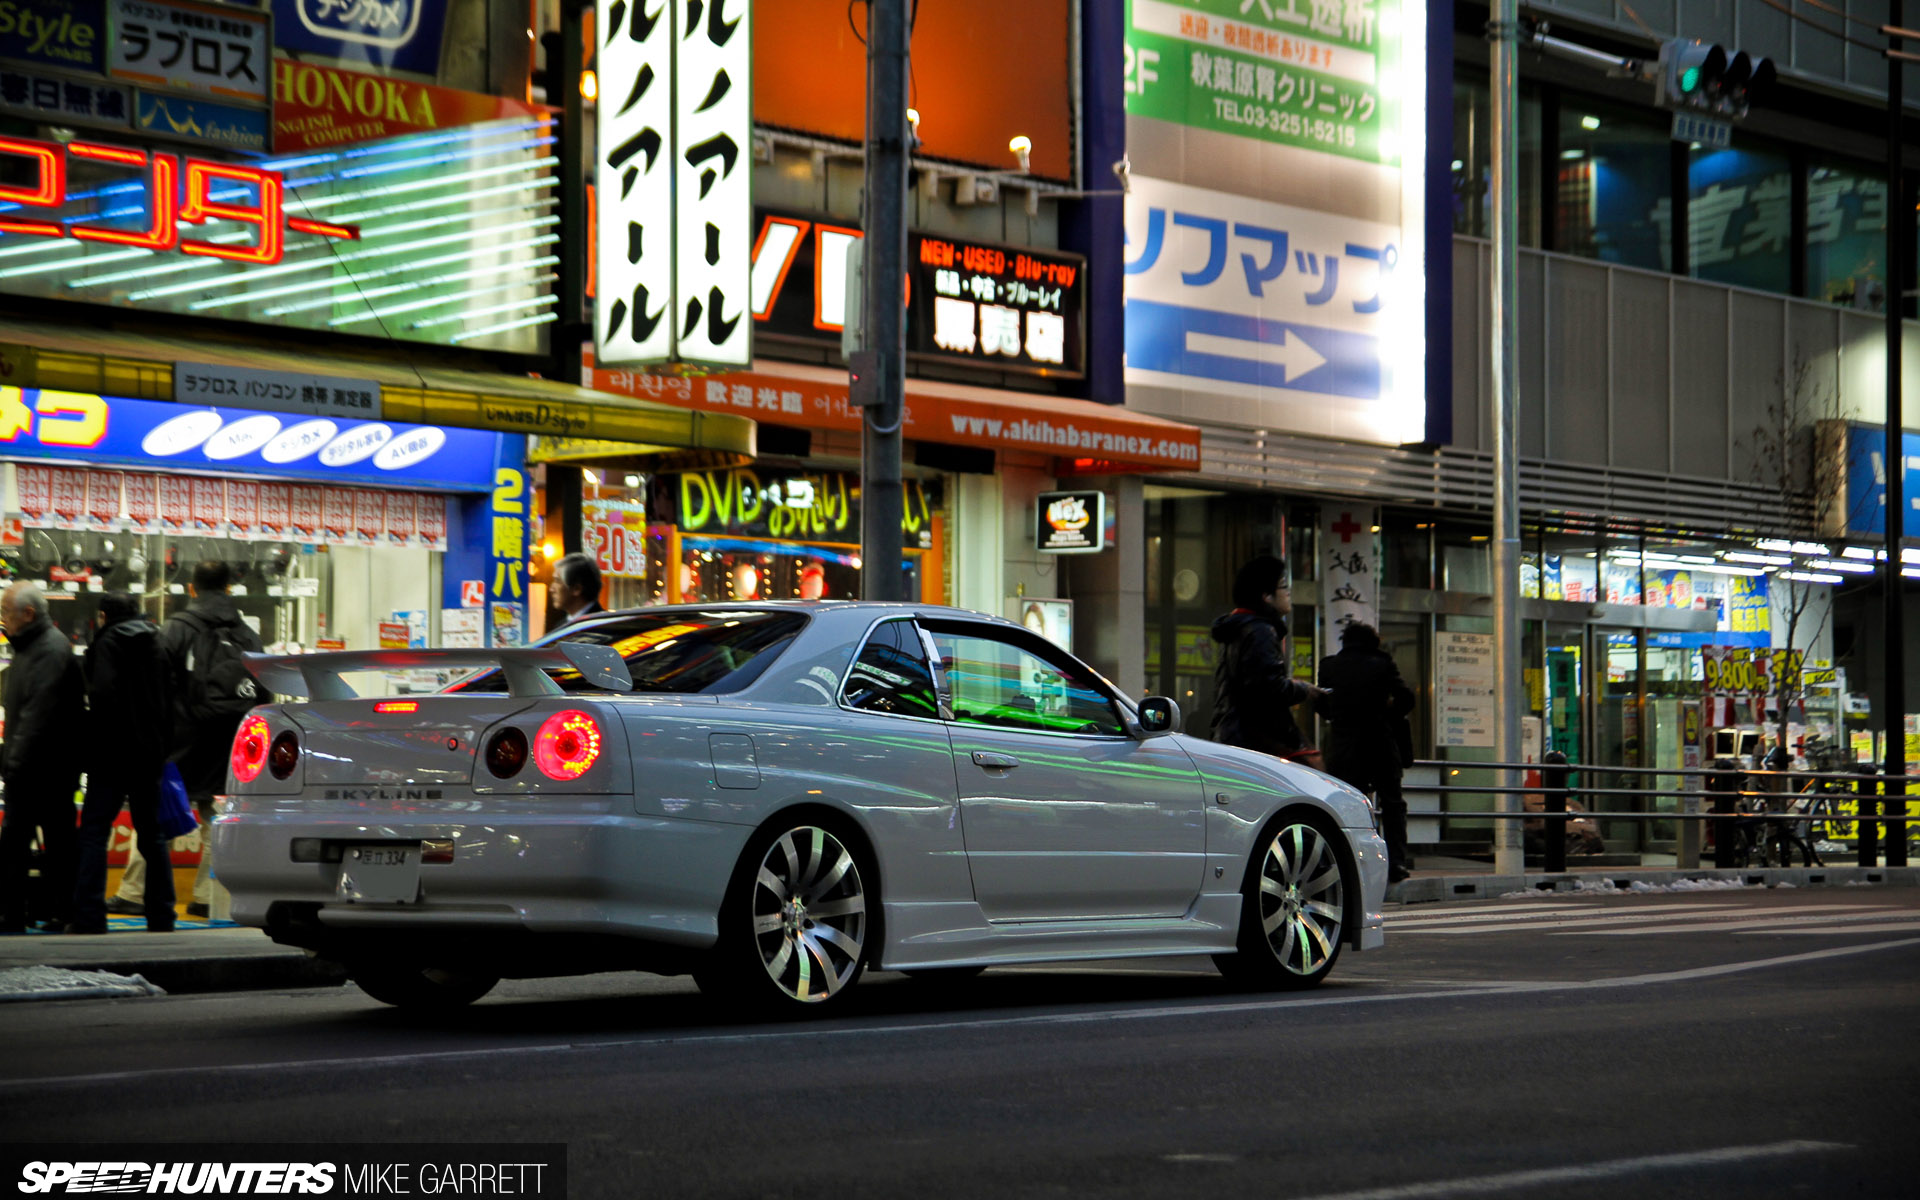 Only in Japan: A Carspotting Story - Speedhunters